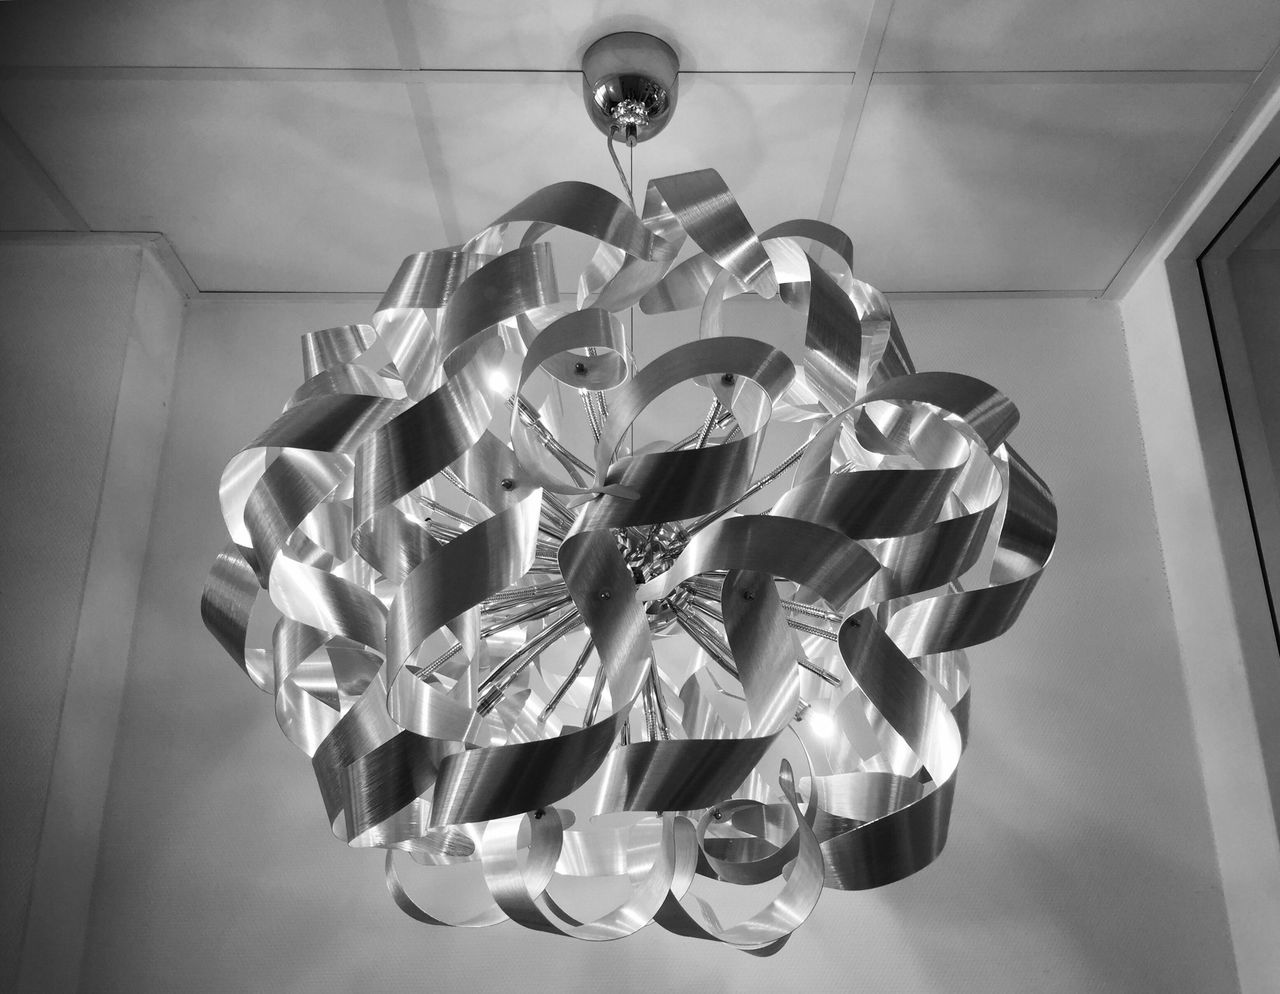 Home Interior Eyeemphotography Taking Photos Blackandwhite Black And White Monochrome Interior Design Interior Light Light And Shadow Ceiling Indoors  Metal Lights